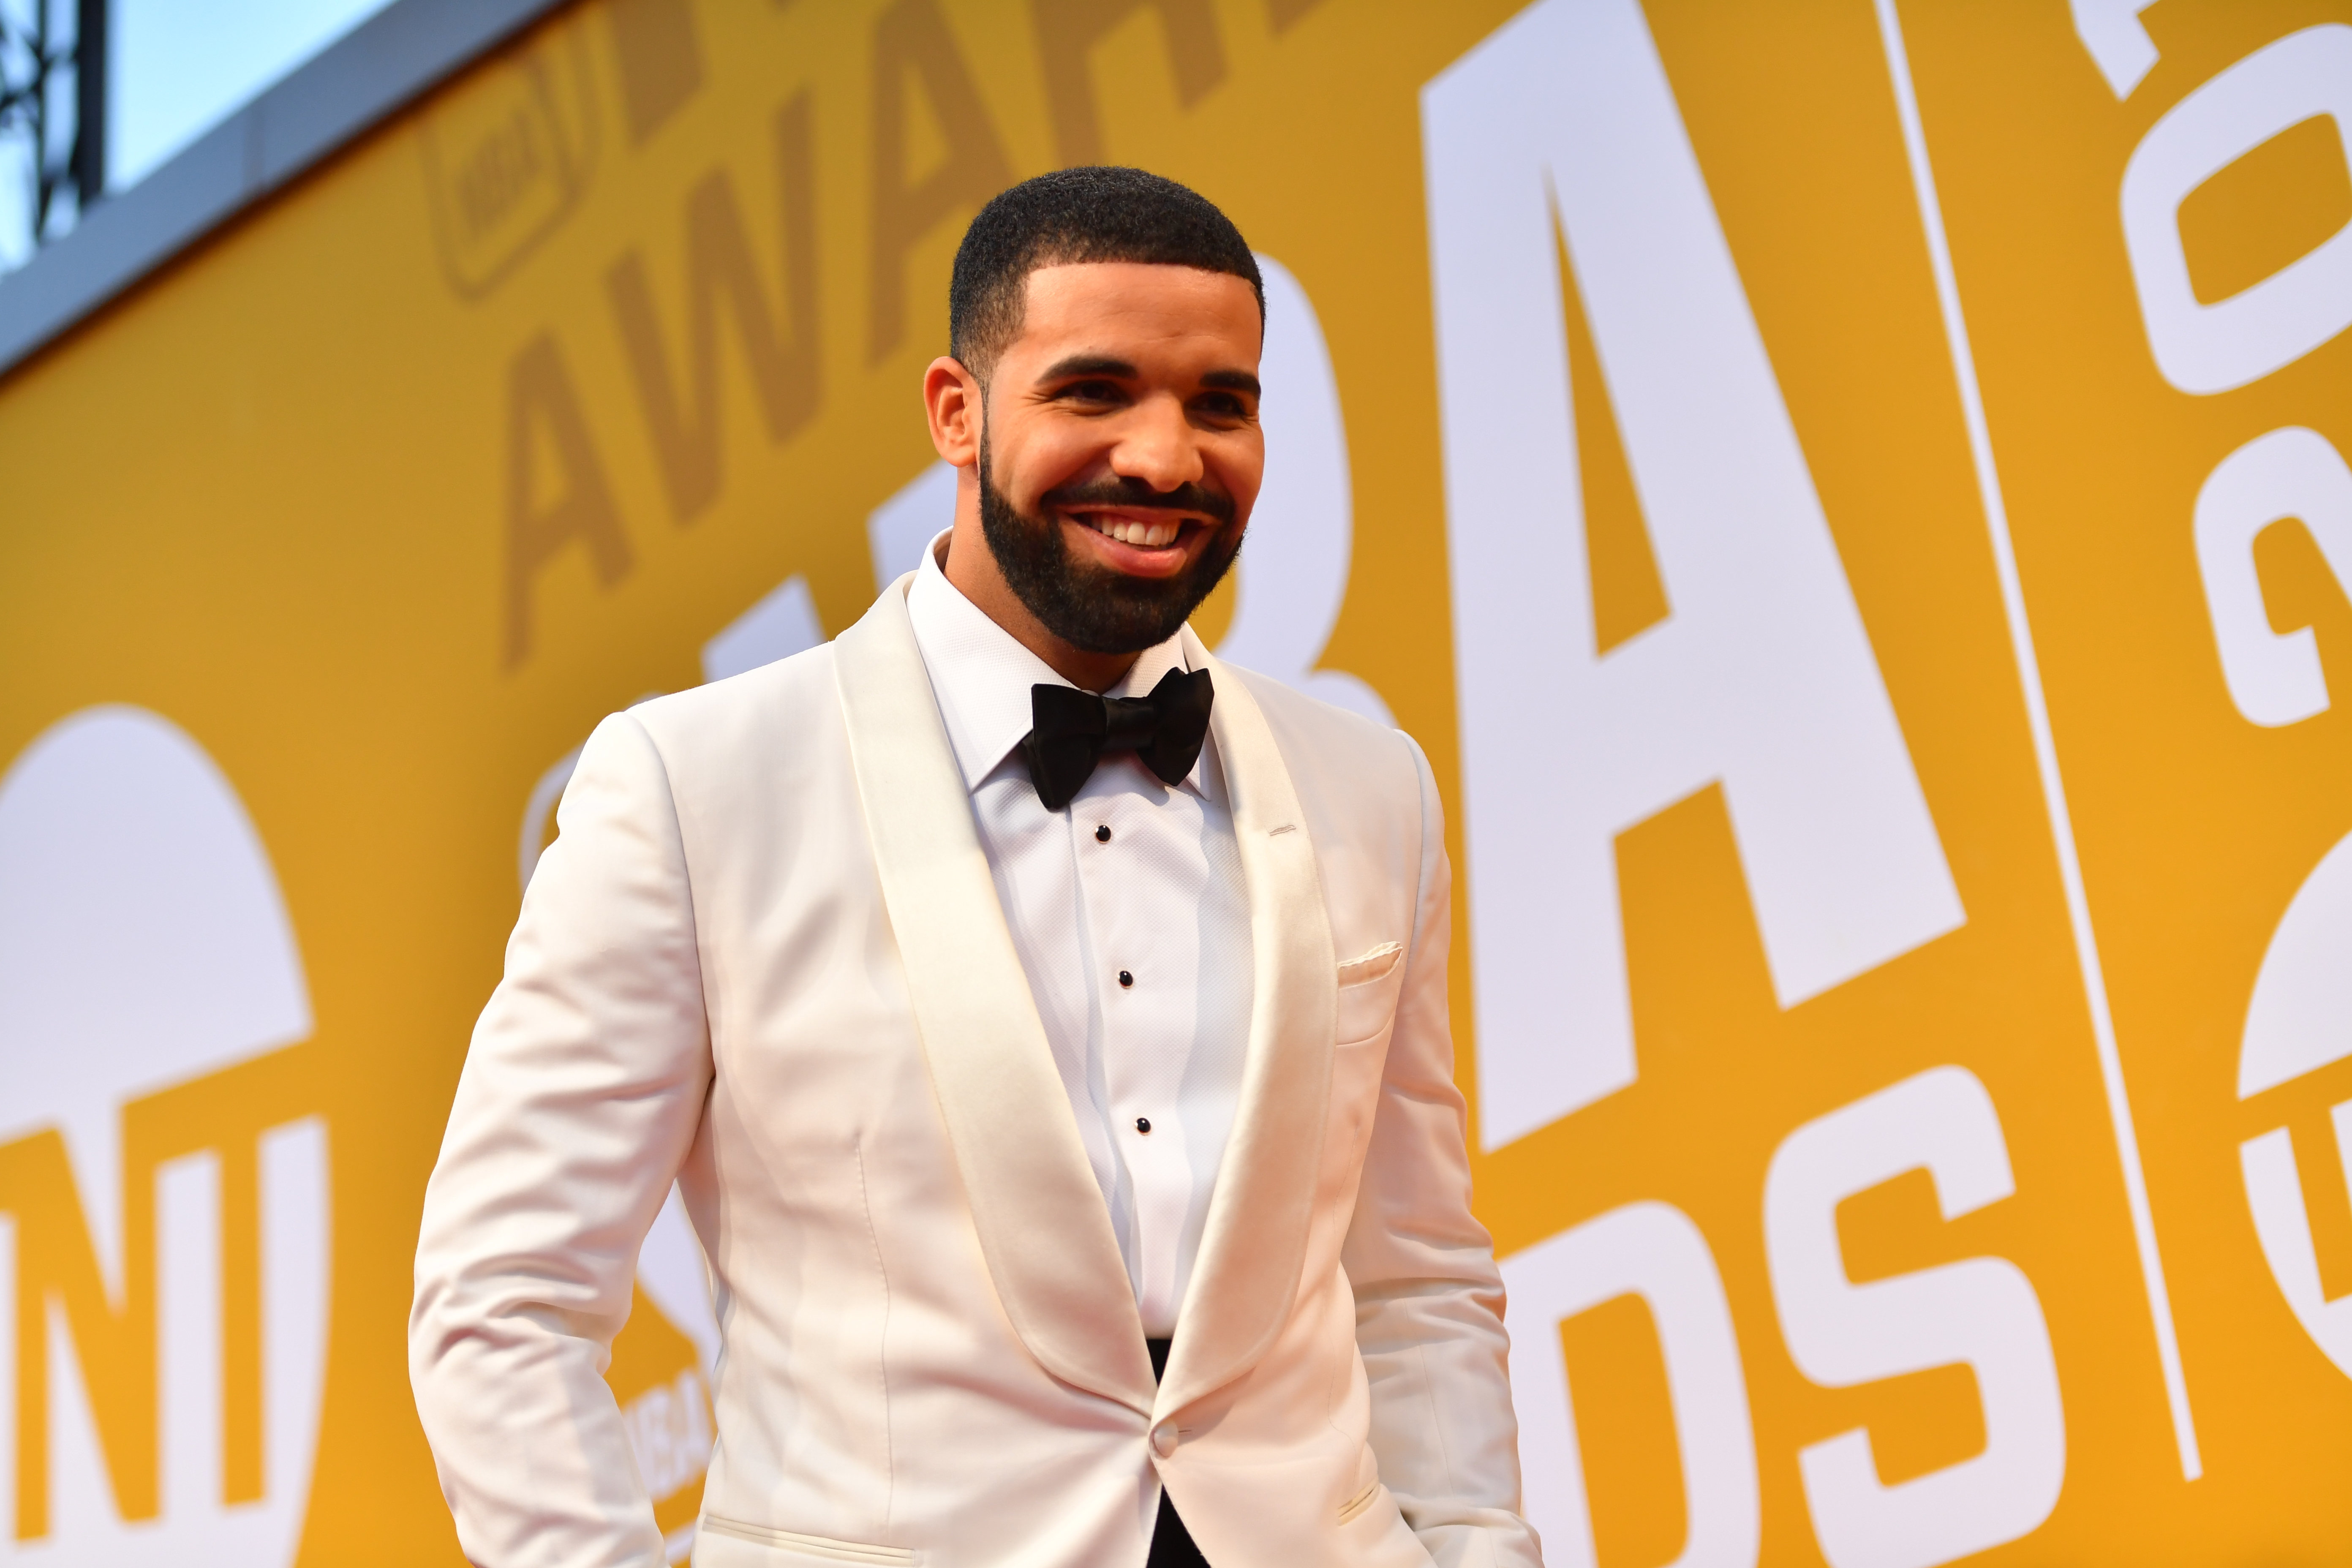 Drake poses on the red carpet during the 2017 NBA Awards Show in New York on June 26, 2017.